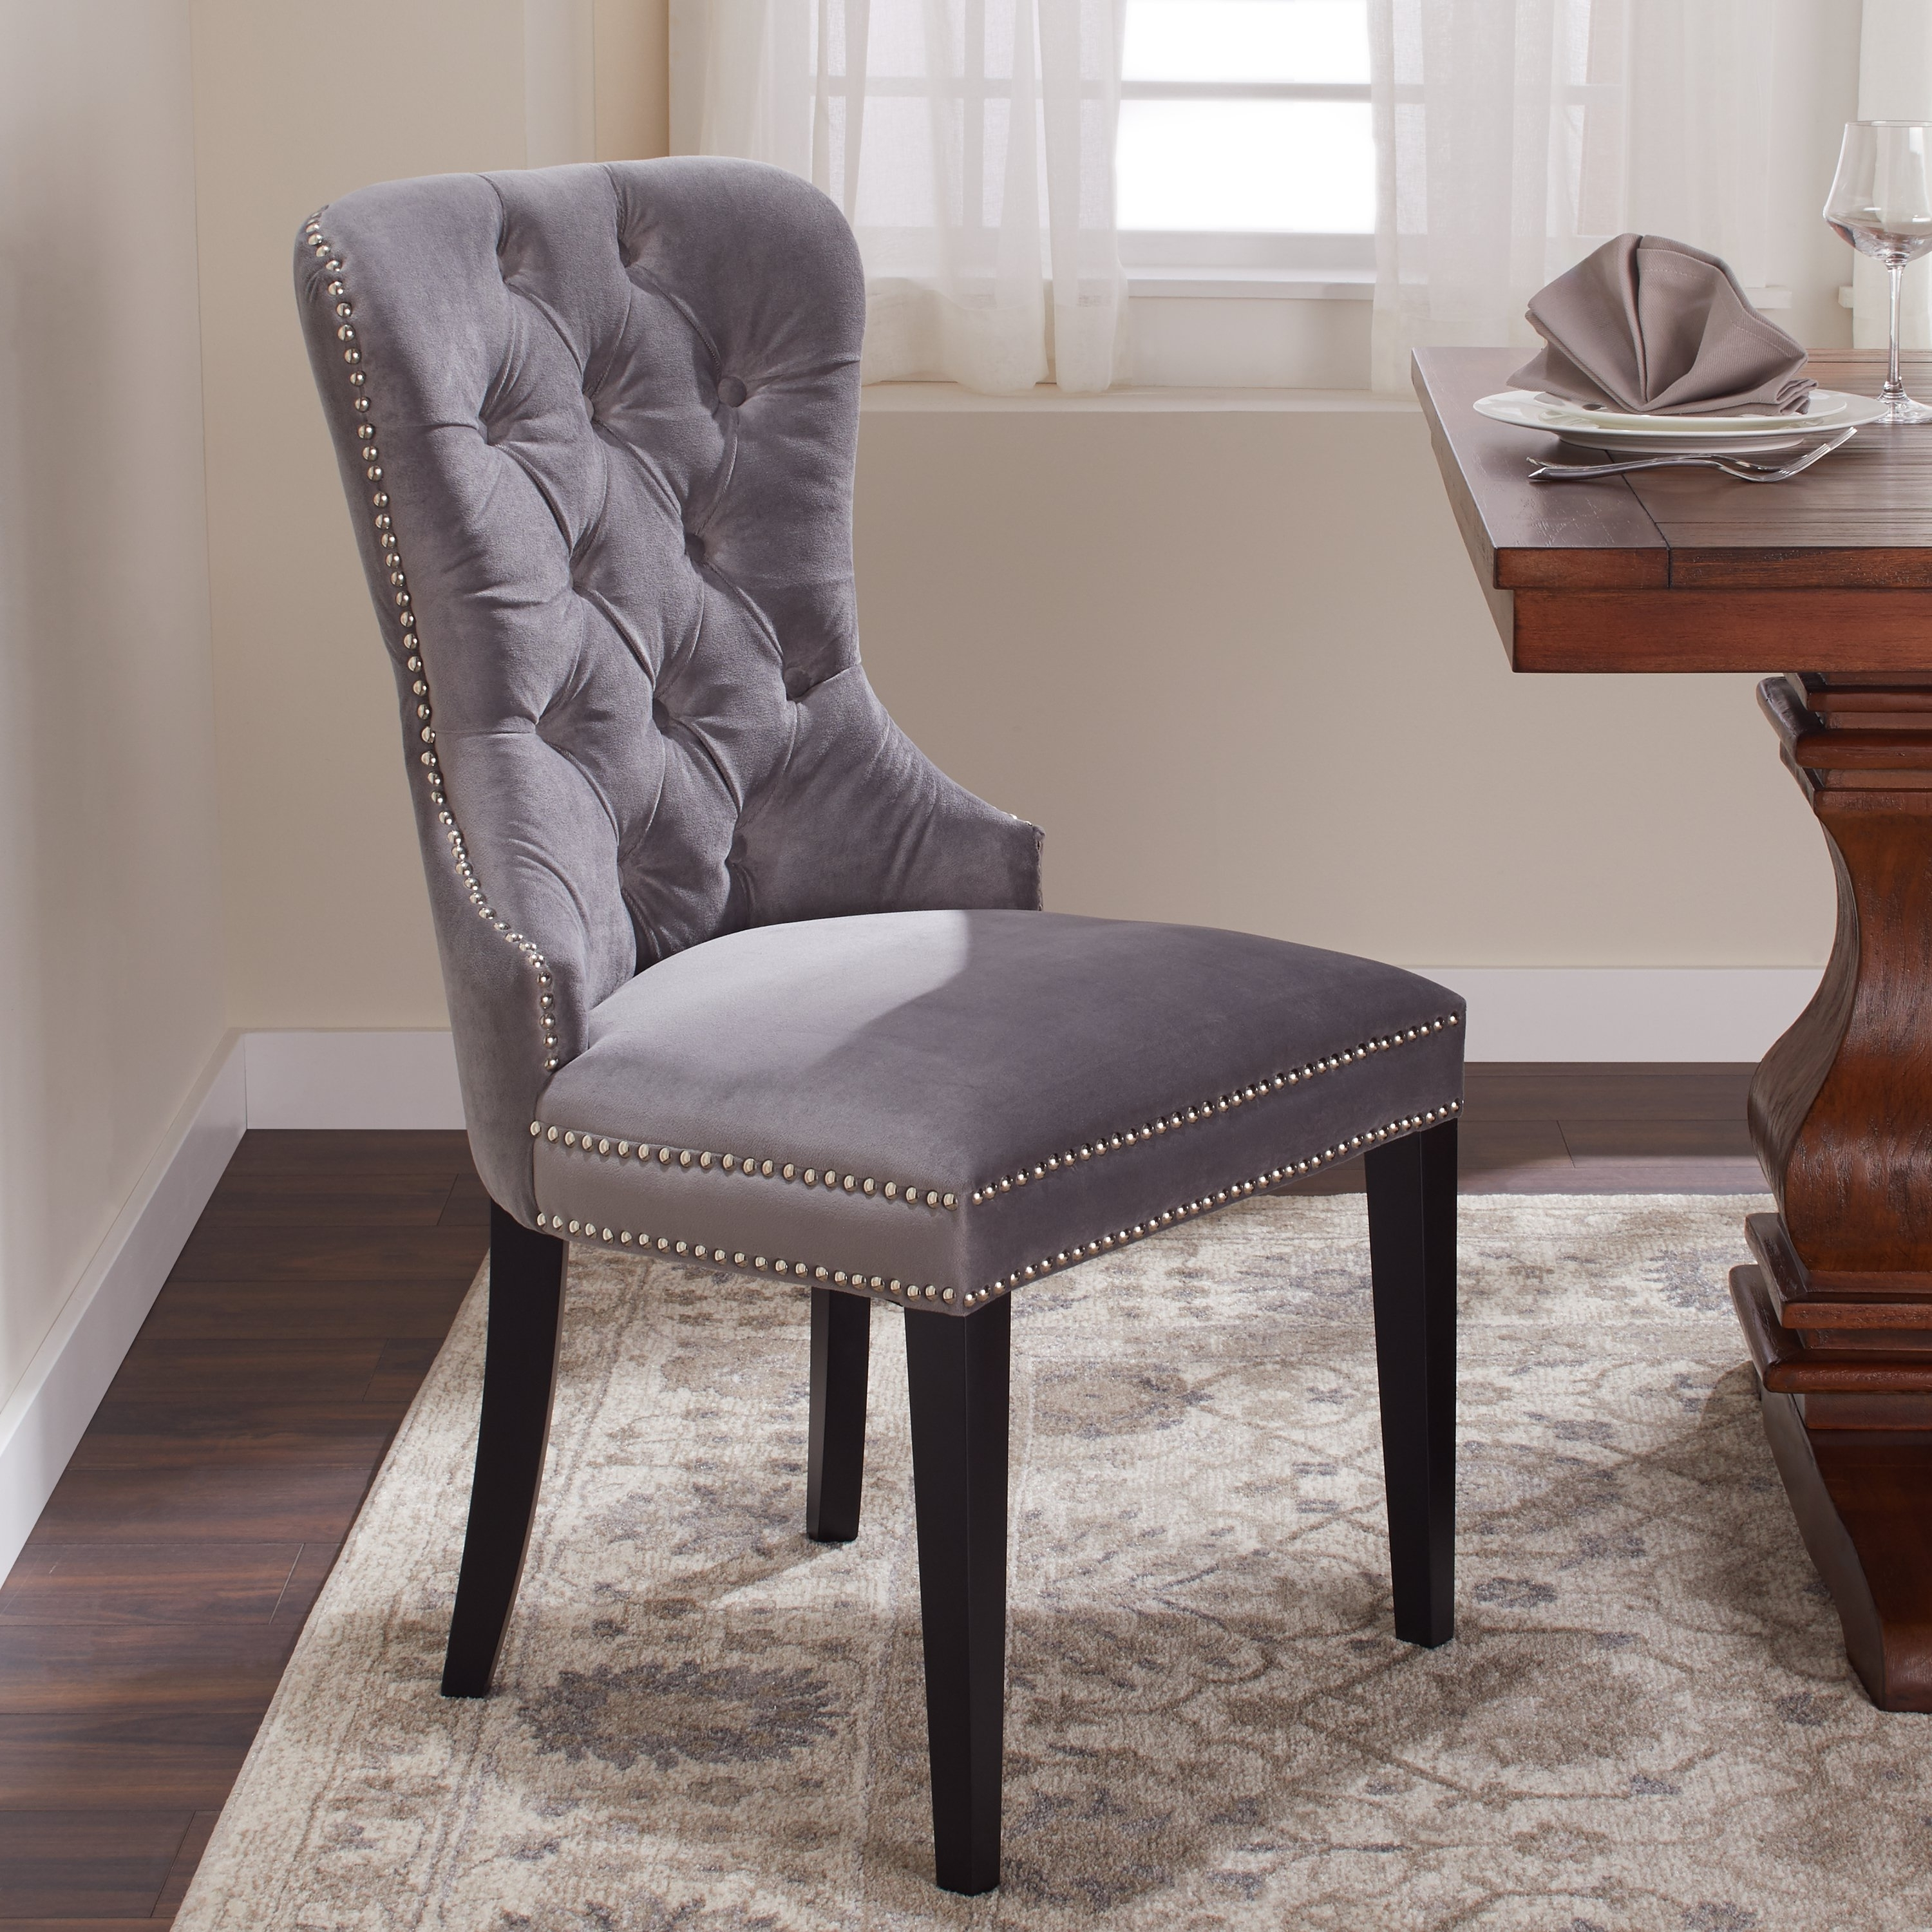 Pilo Grey Side Chairs Pertaining To 2018 Shop Abbyson Versailles Grey Tufted Dining Chair – On Sale – Free (View 3 of 20)